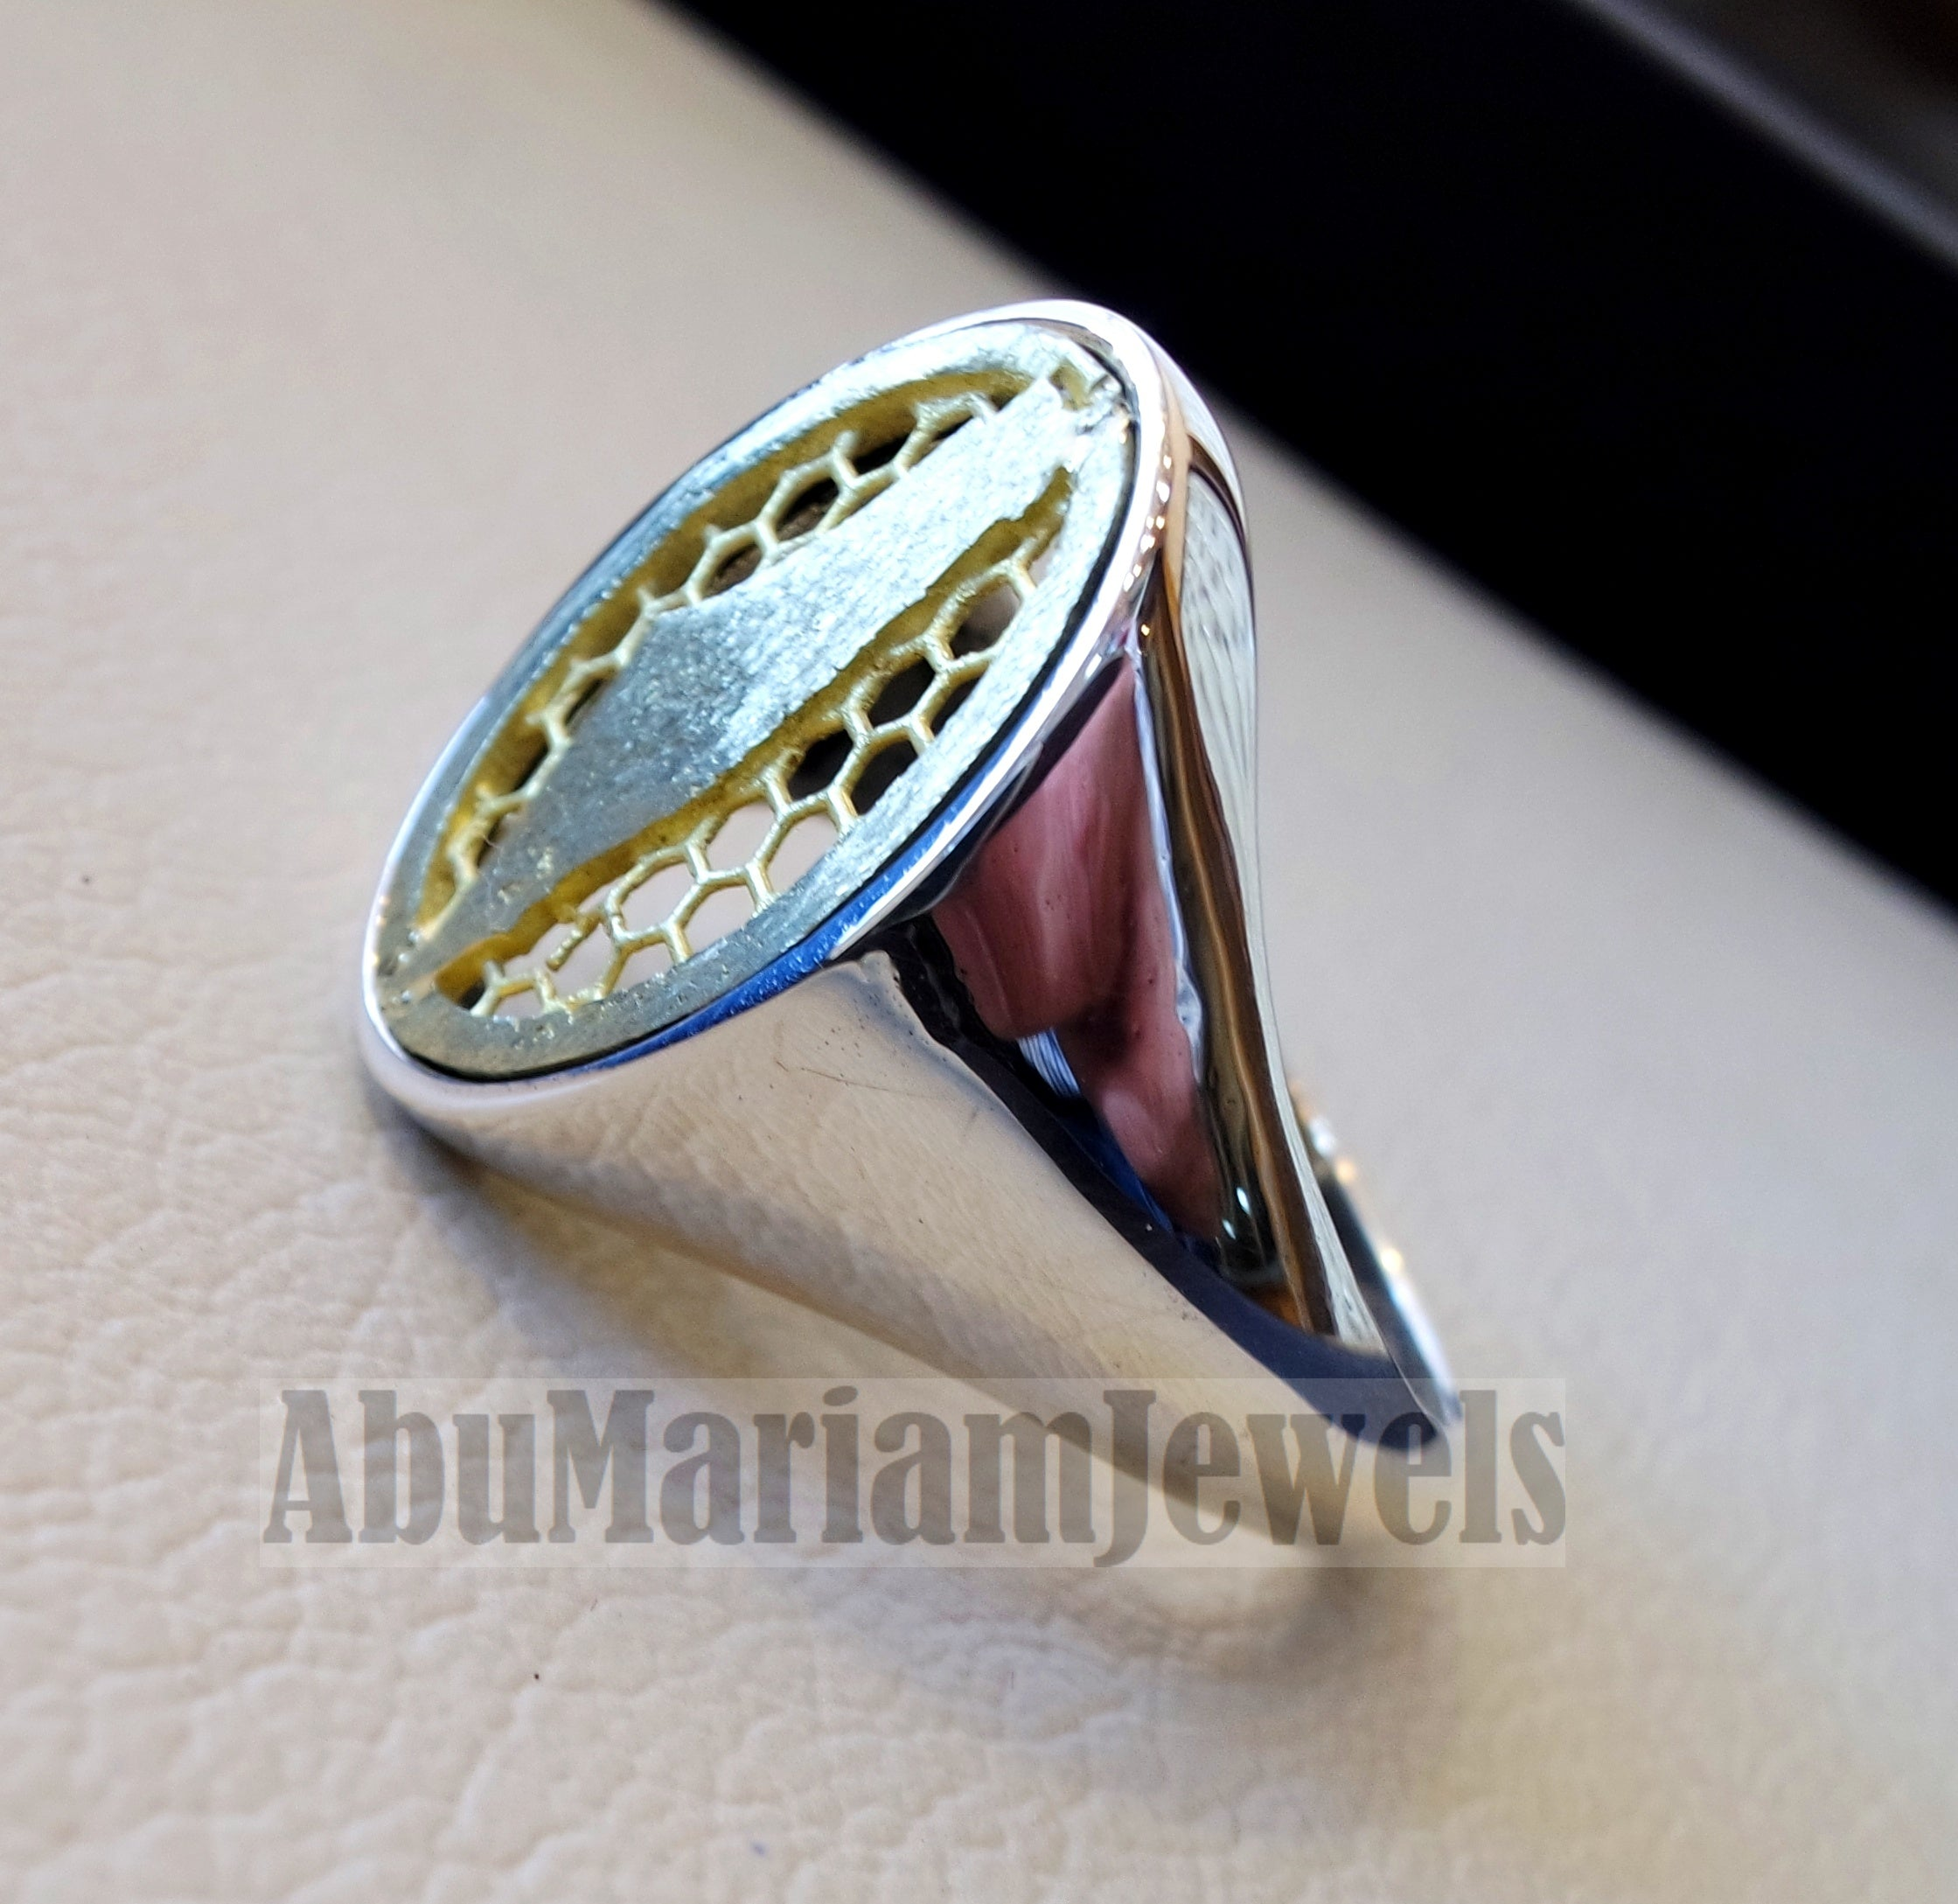 Palestine map man ring sterling silver and bronze Arabic middle eastern free palestine fast shipping all sizes خاتم فلسطين